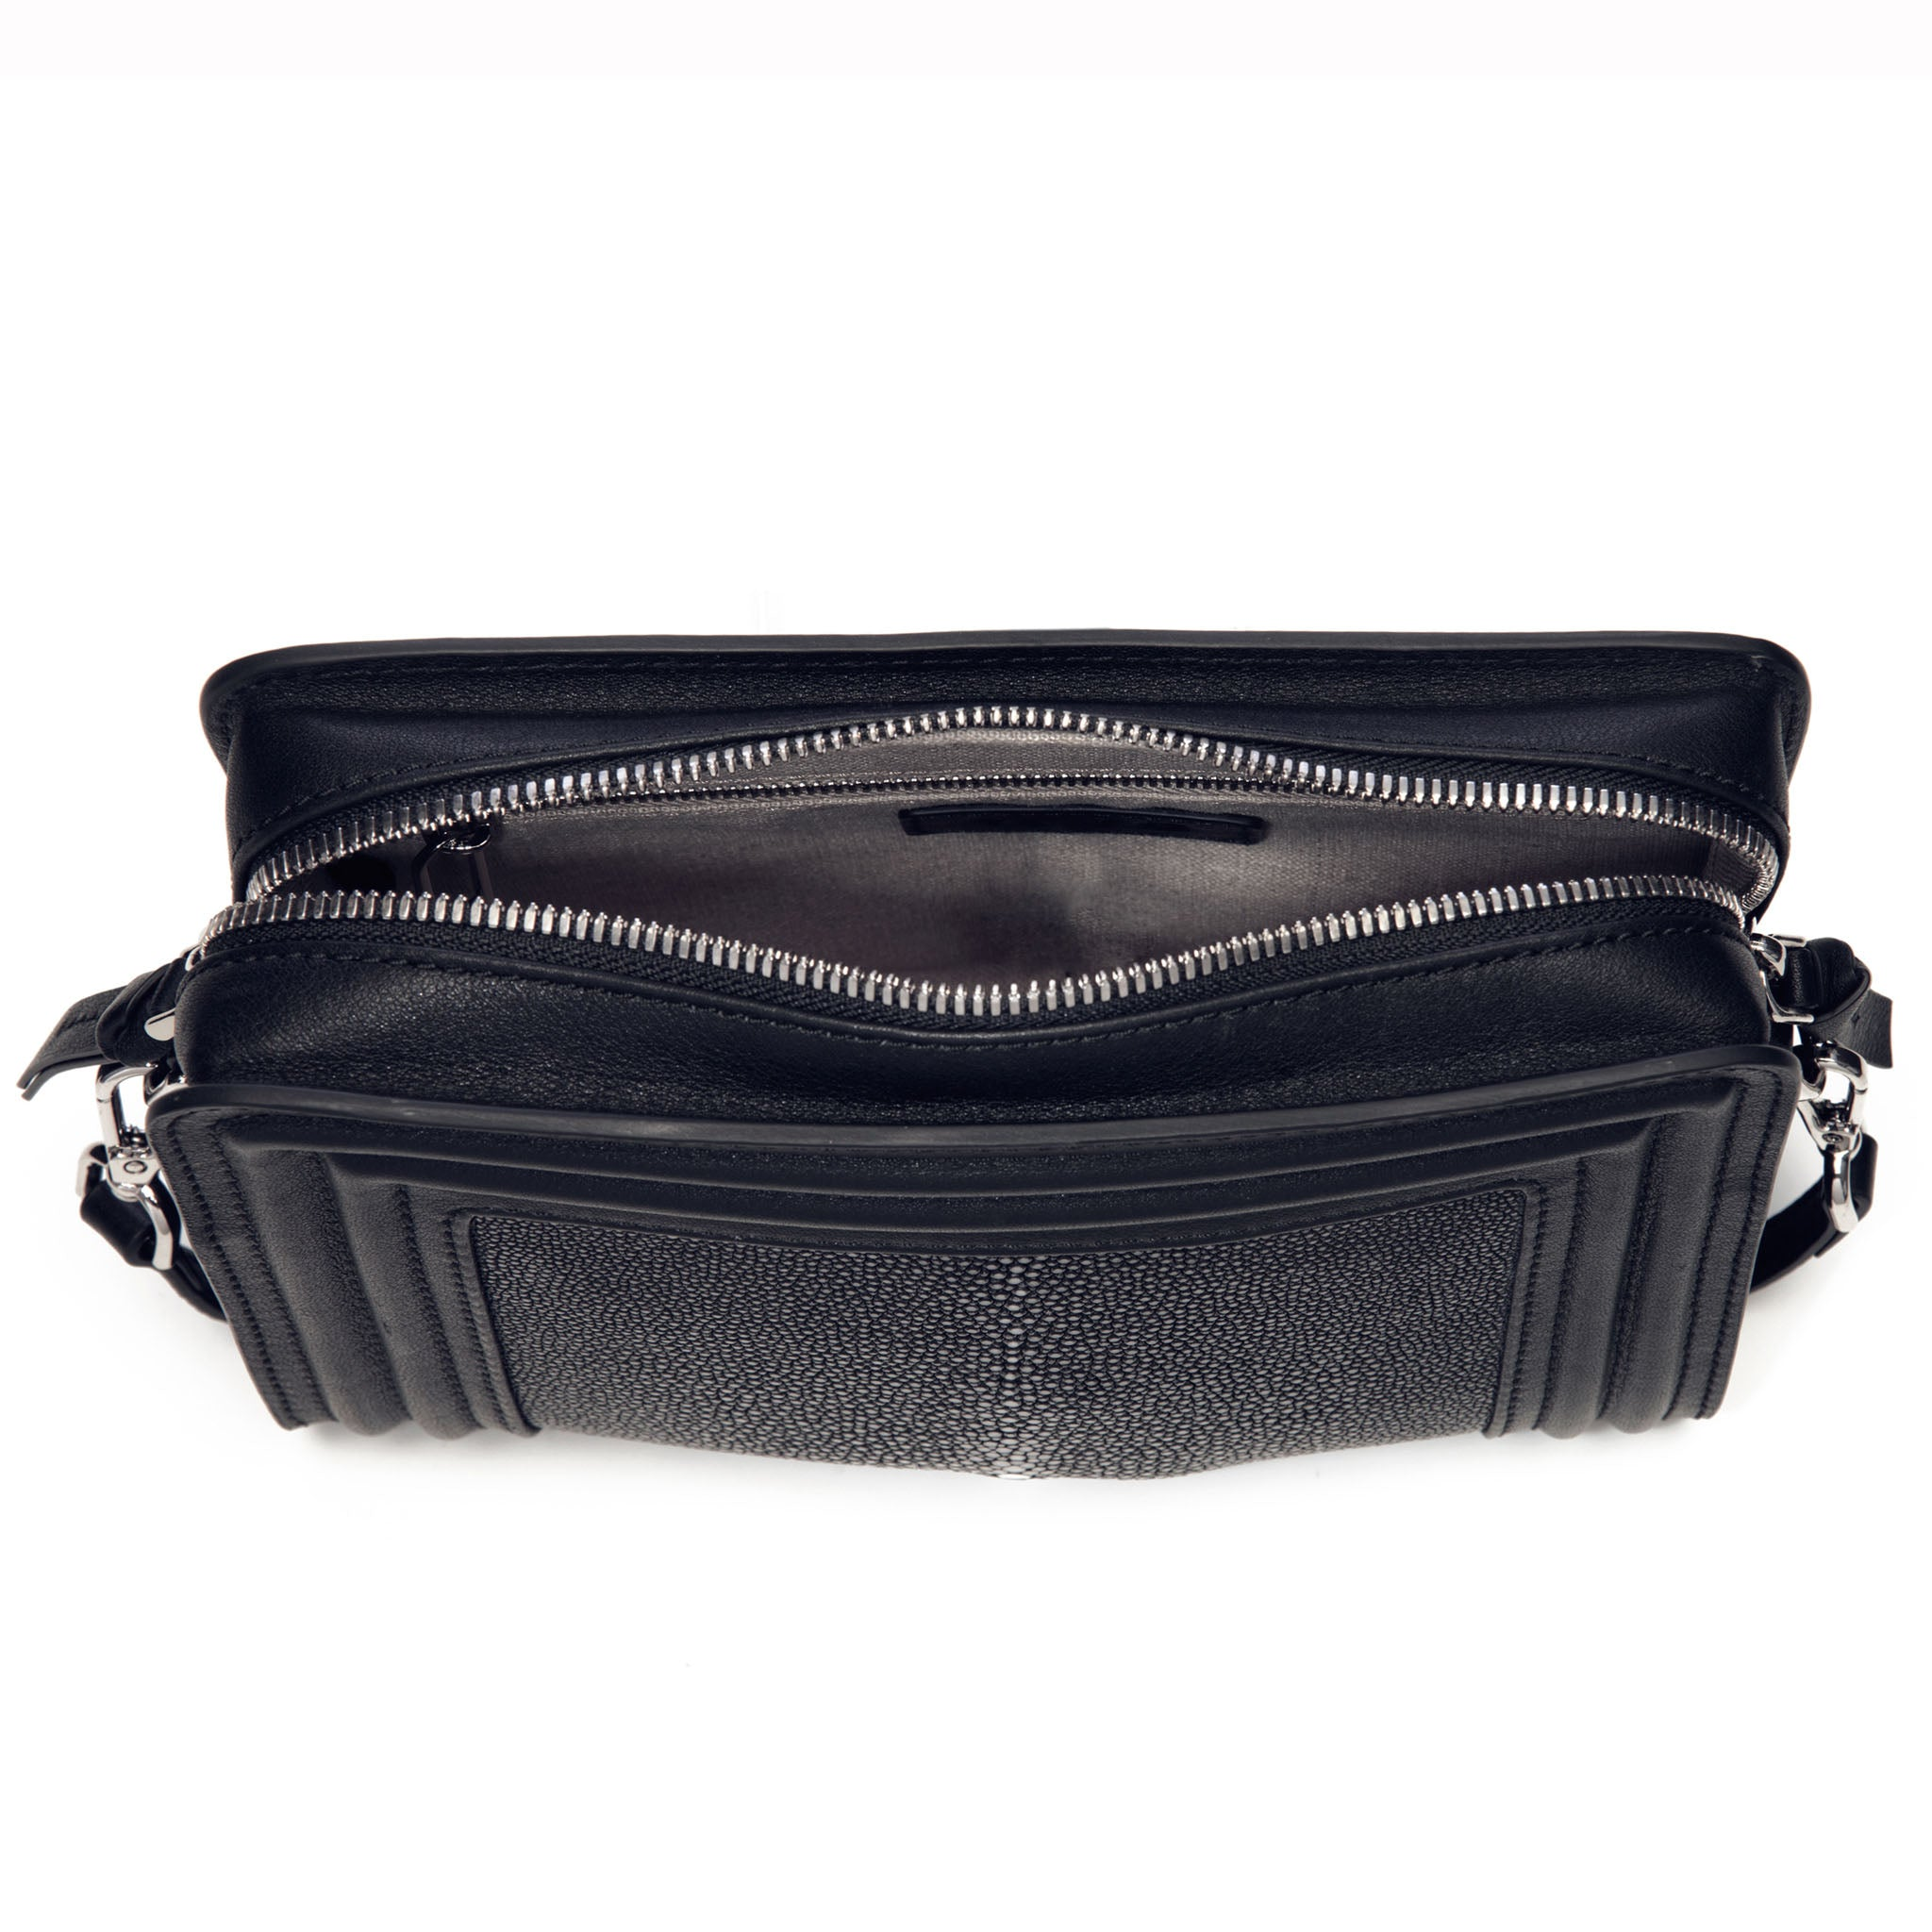 Black Corded Leather Frames Black Stingray Double Zipper Top Cross Body Bag Inside View Nora - Vivo Direct